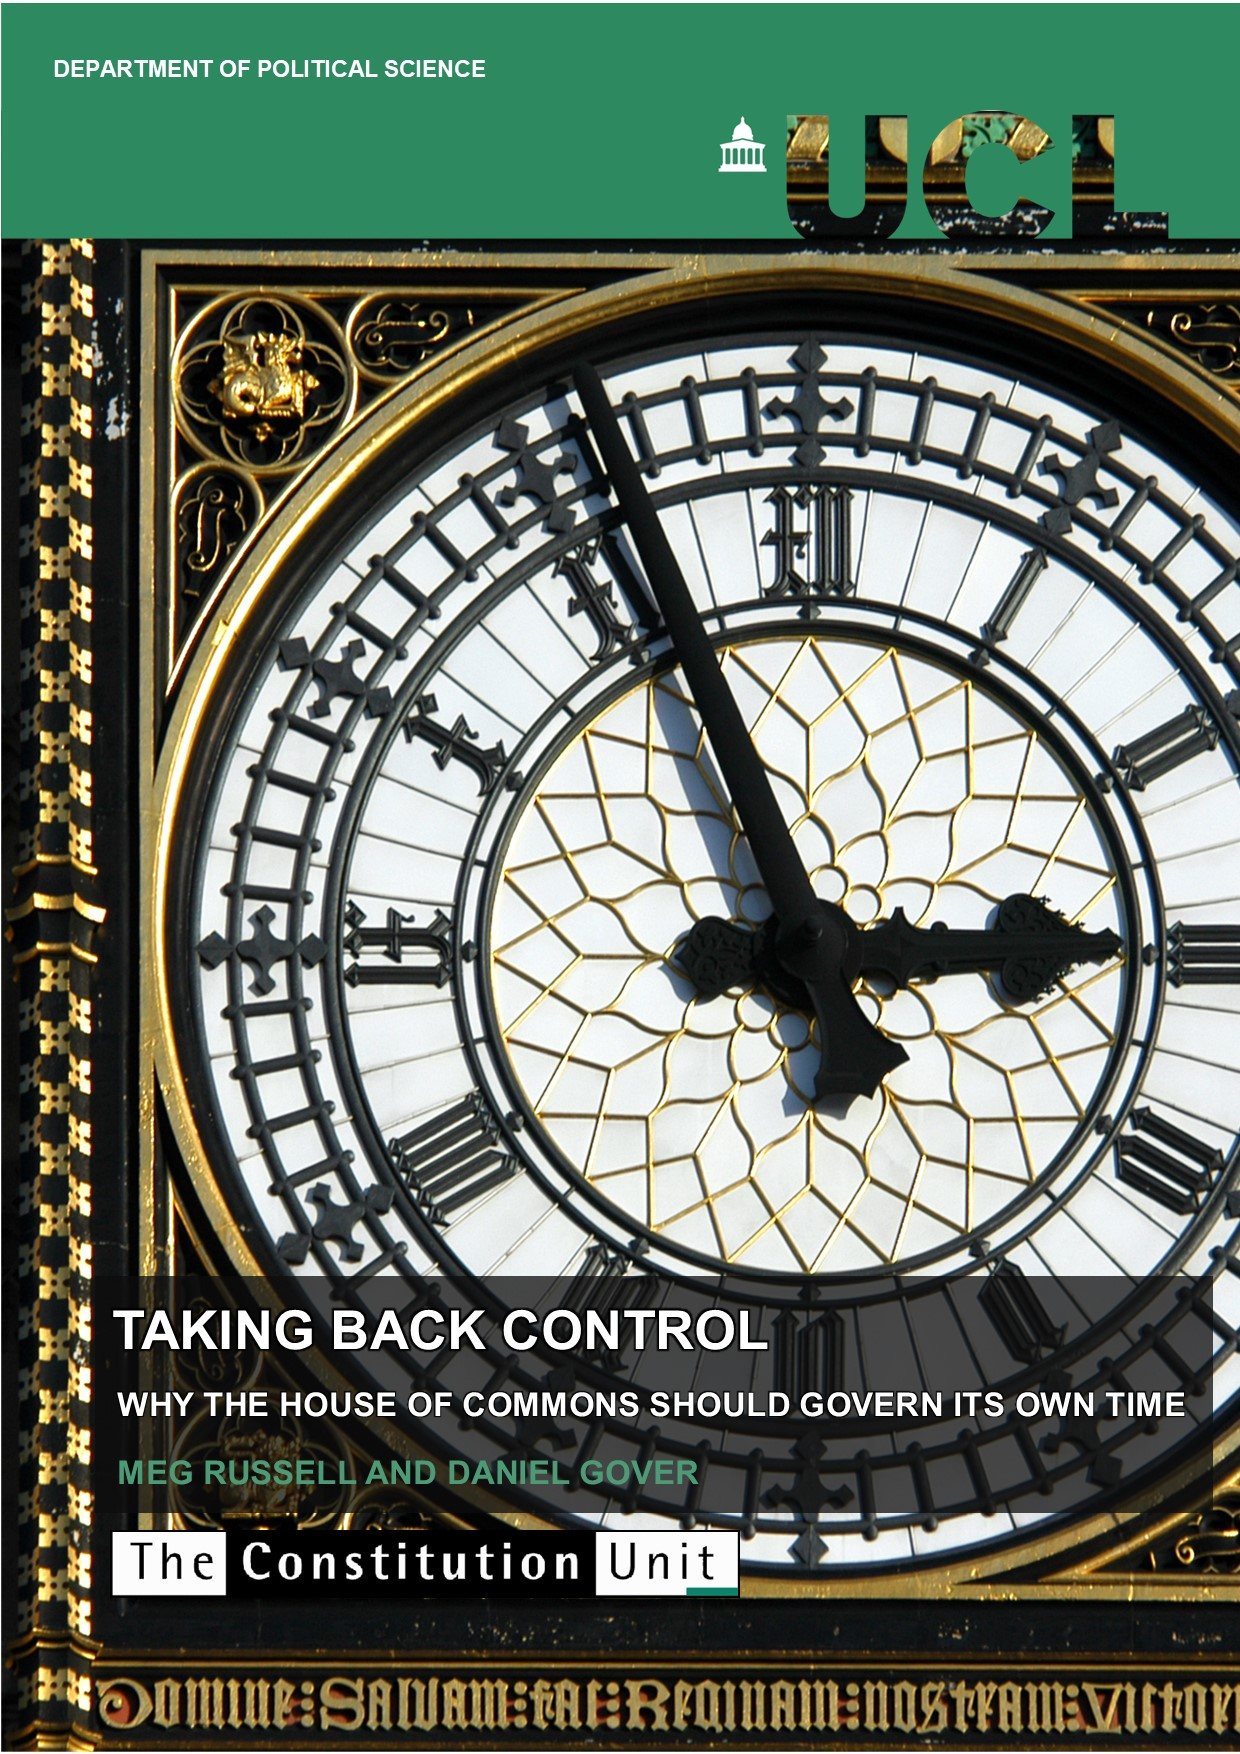 Taking back control front cover